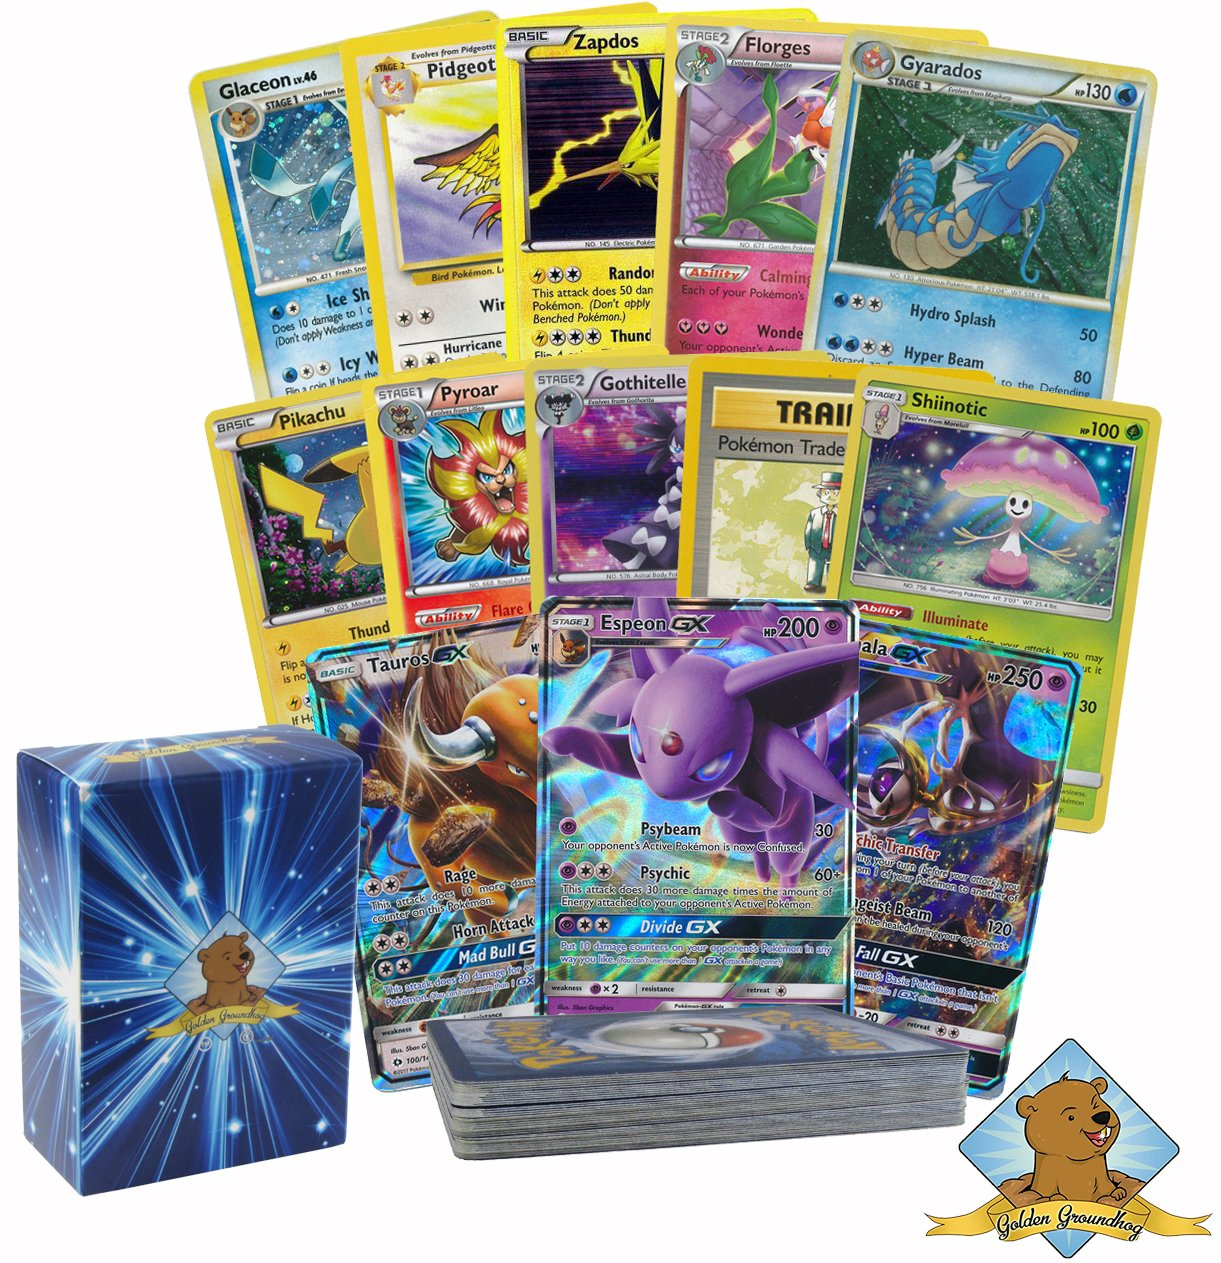 30 Pokemon Card Lot w/ 1 Ultra Rare GX, 6 Holos and 4 Rares! No Duplicates! By Golden Groundhog